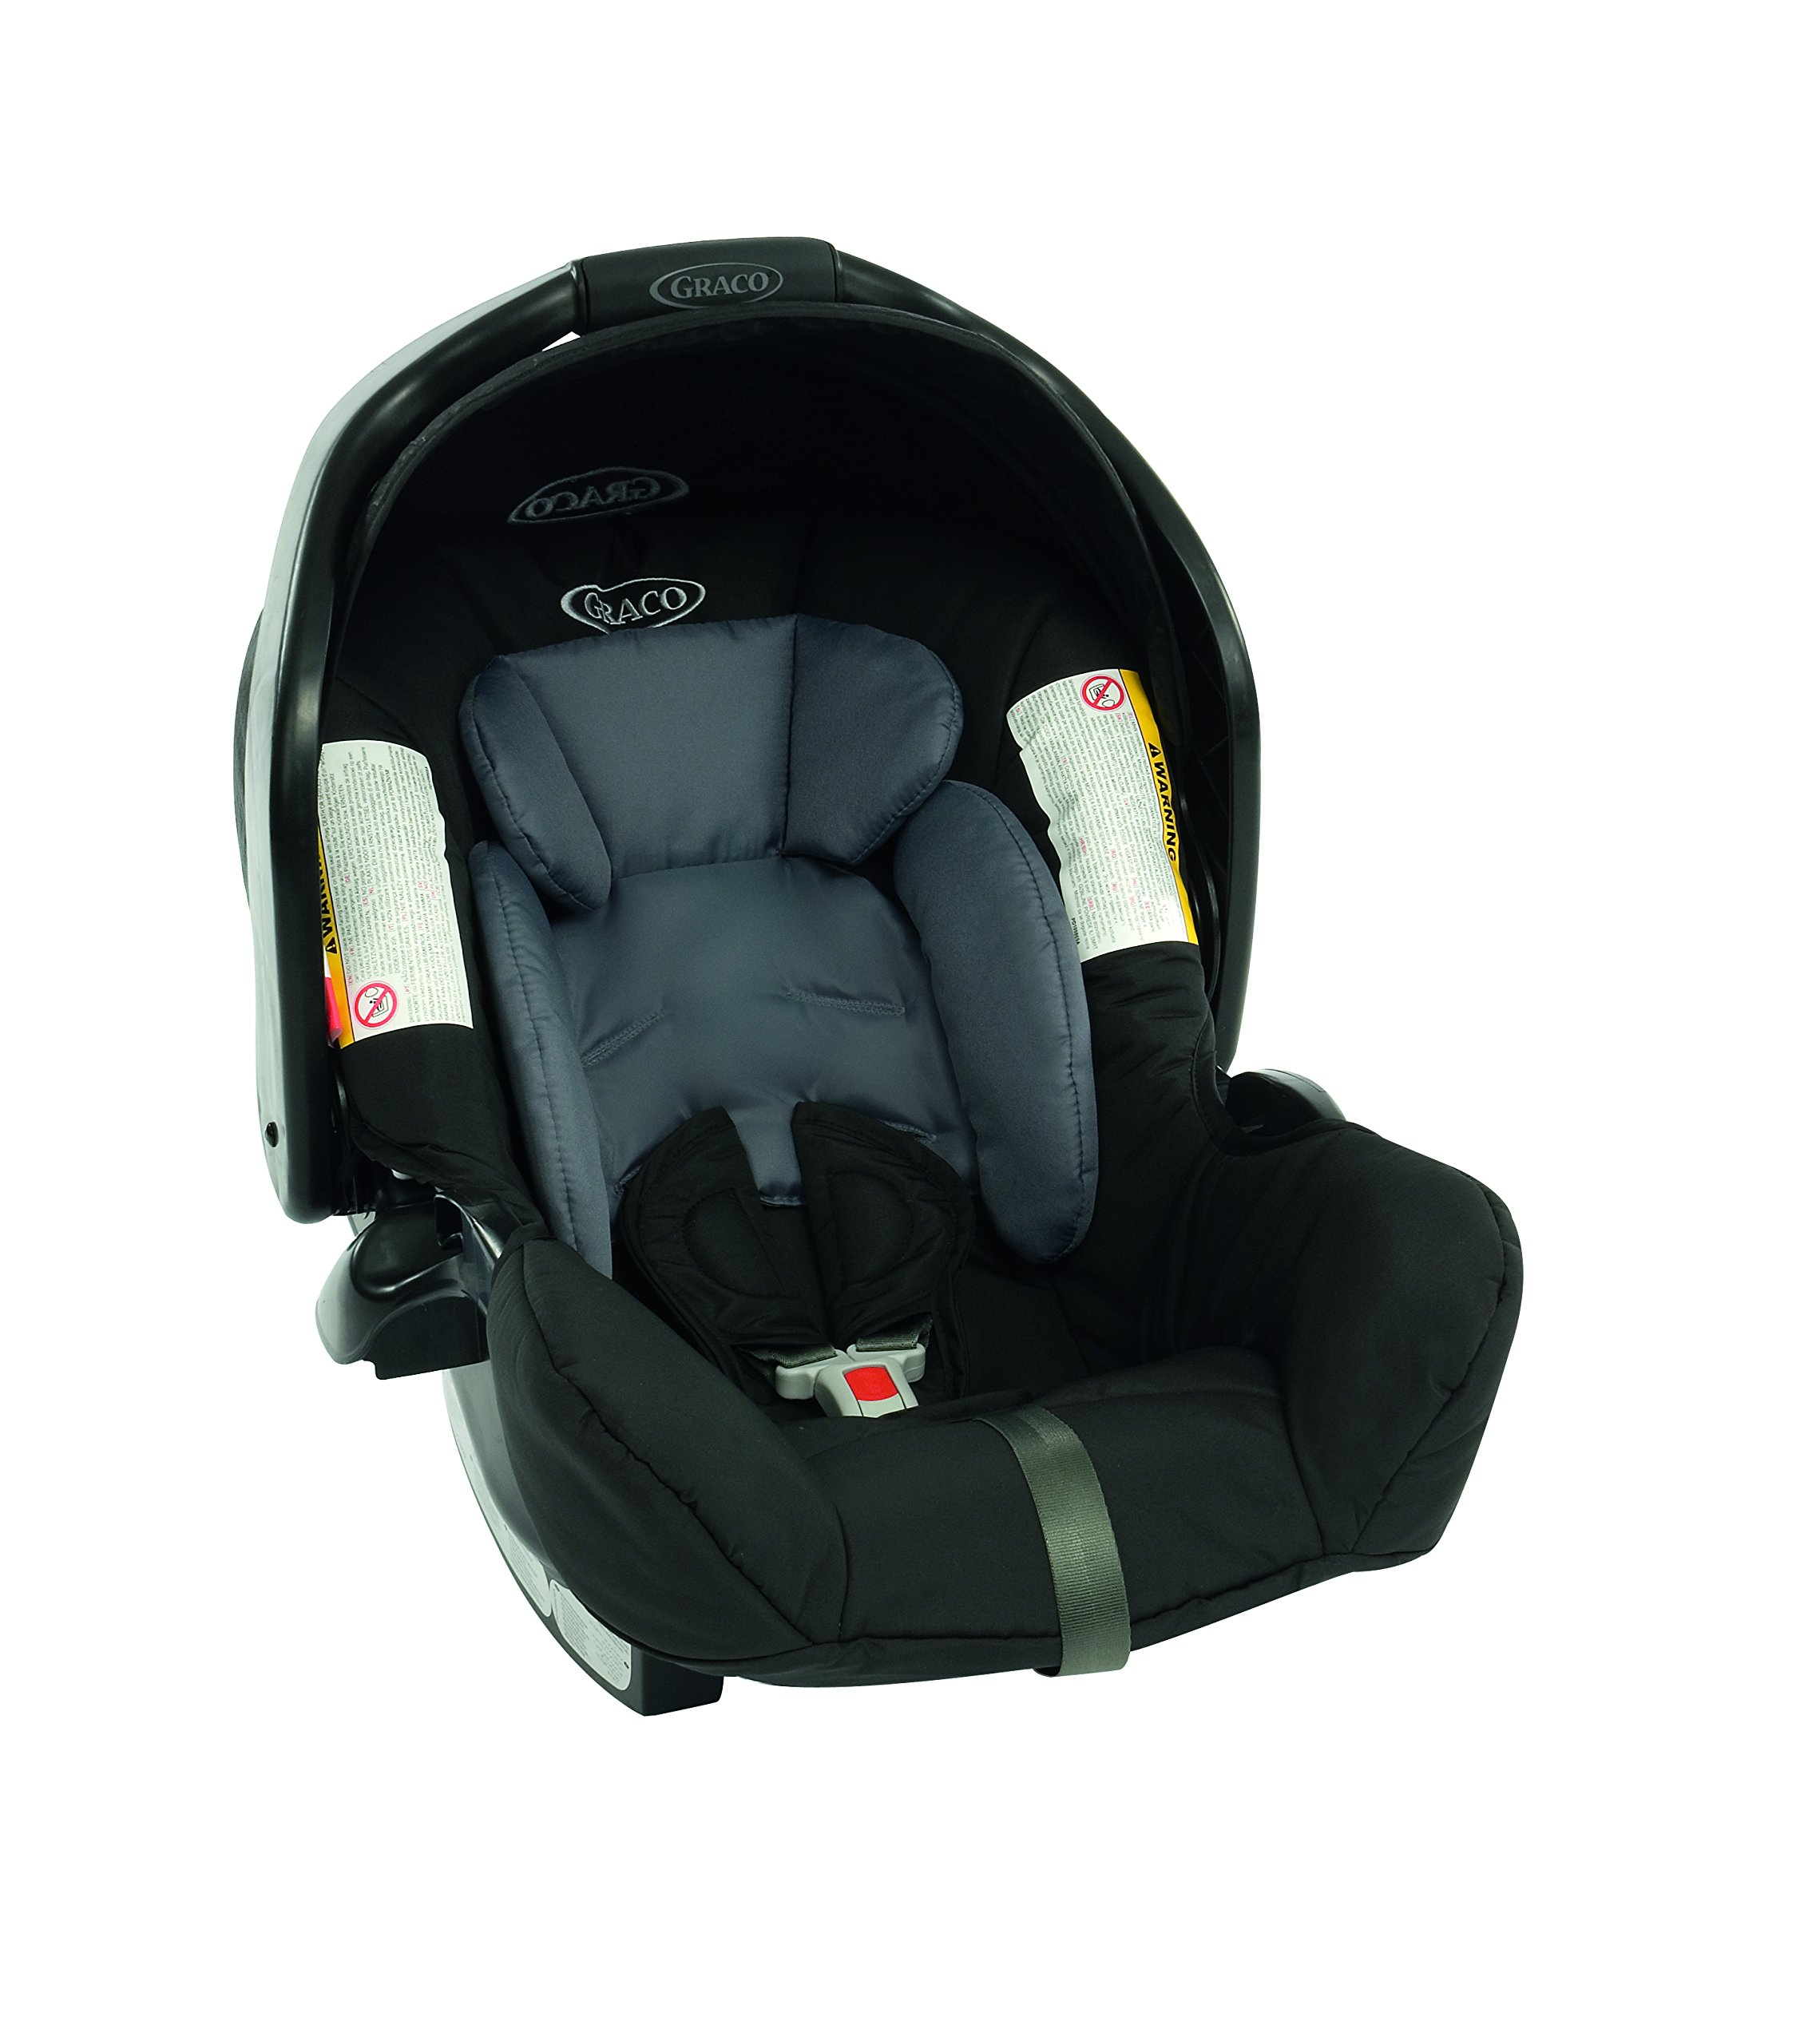 Car Seat Graco New Born